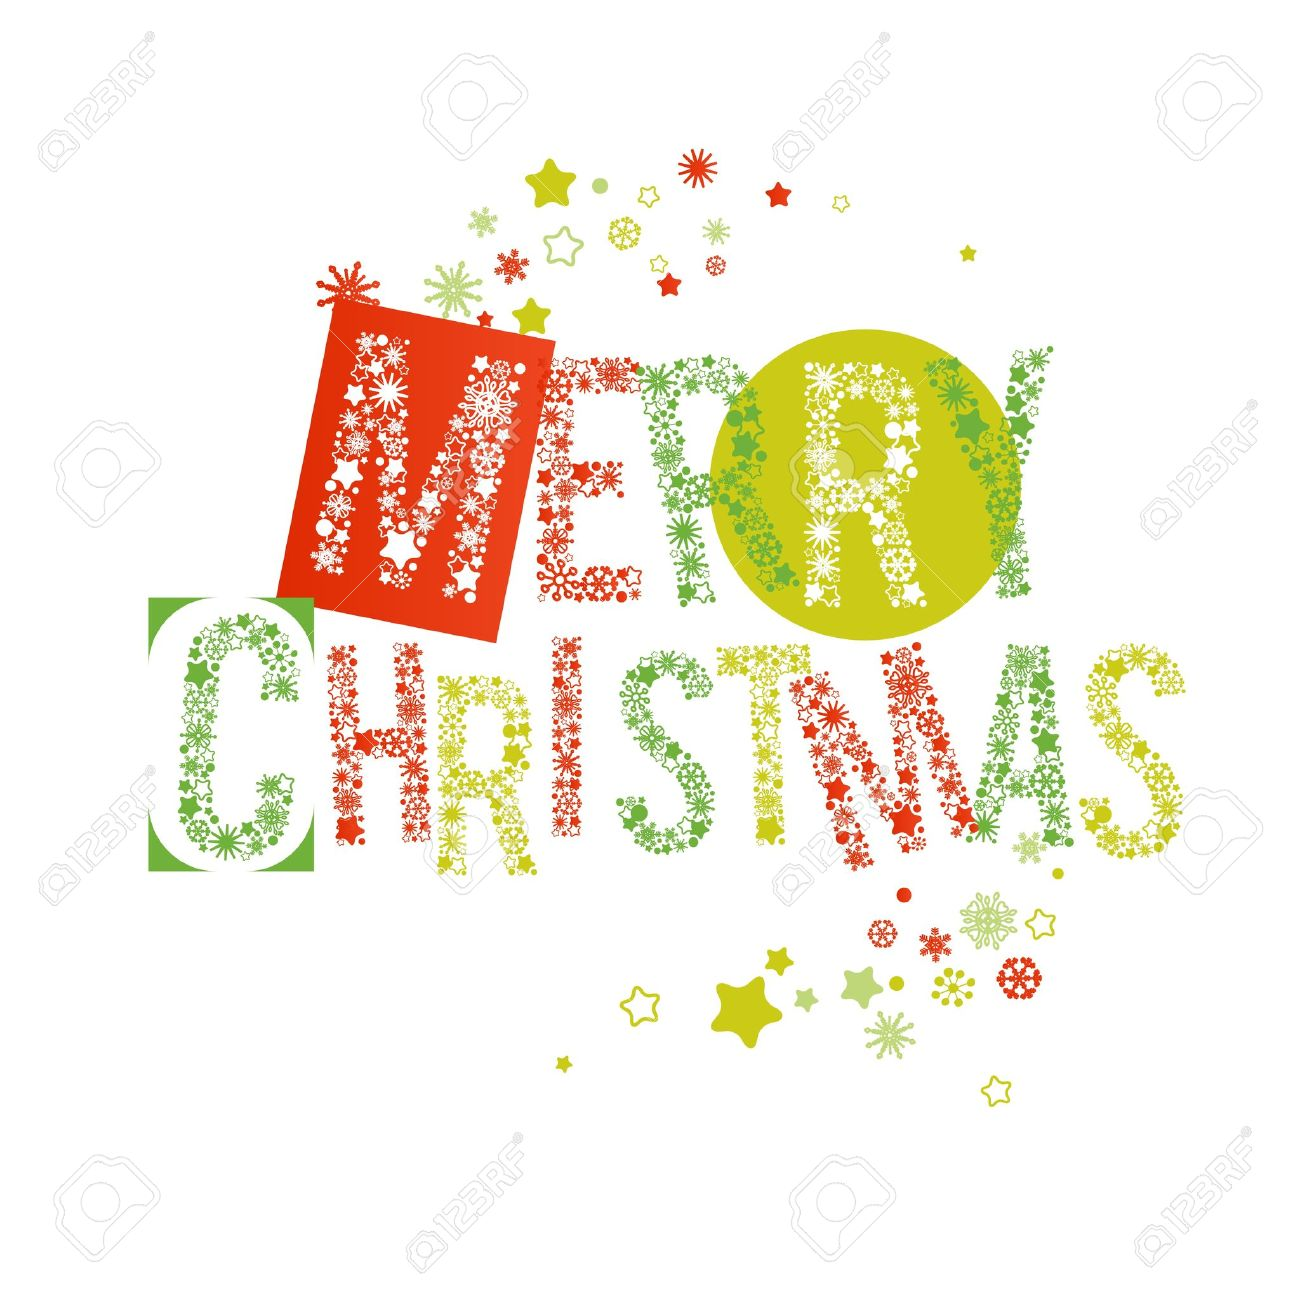 Merry Christmas Words Stock Photos. Royalty Free Merry Christmas ...